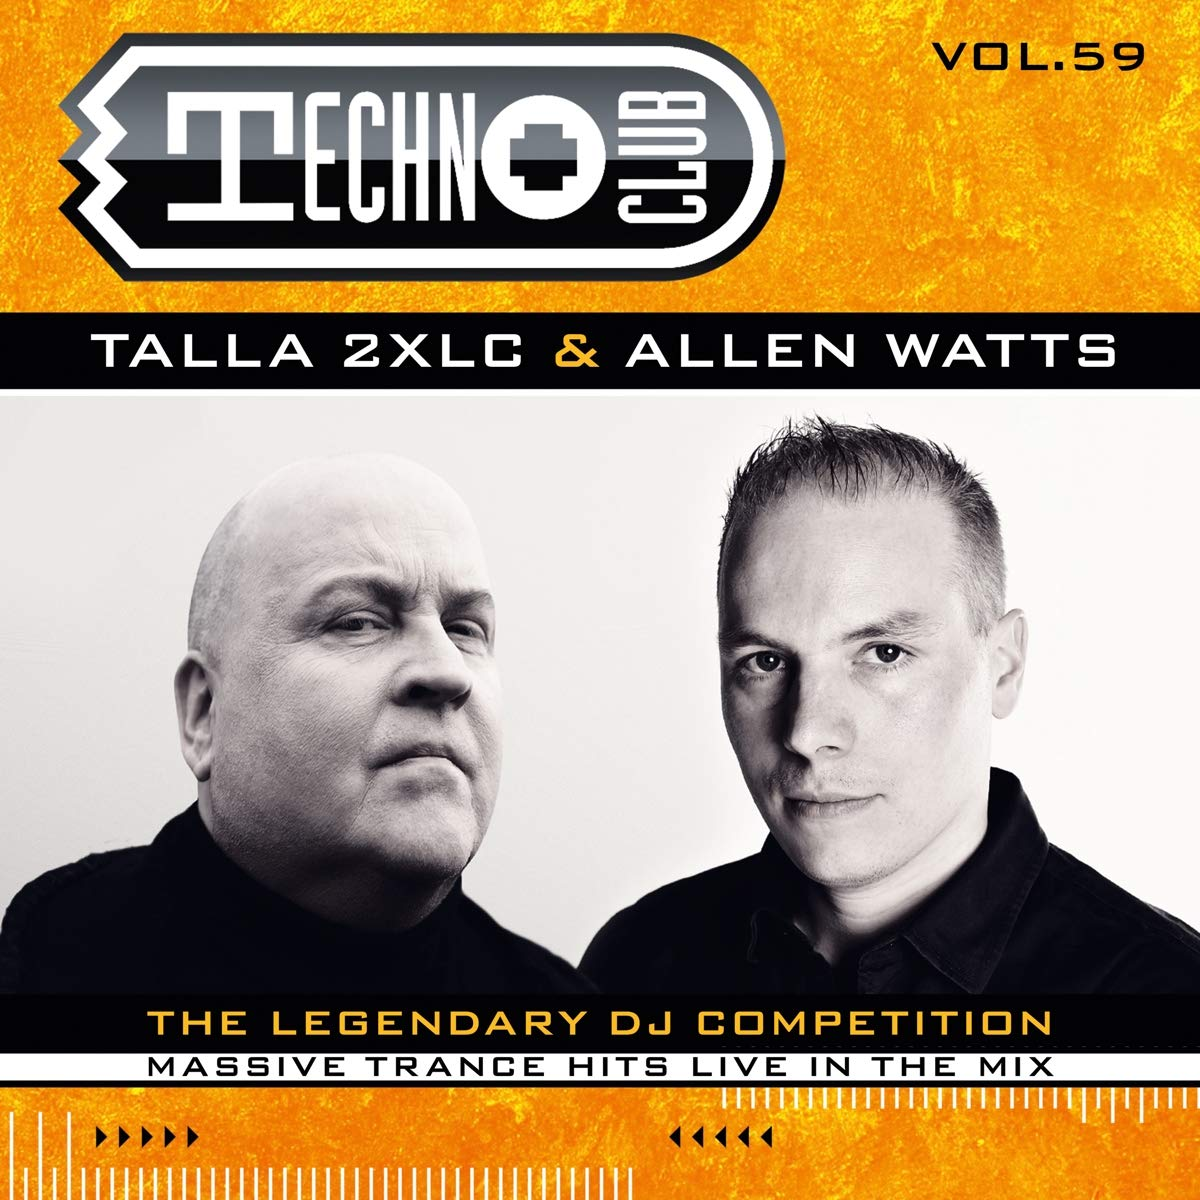 VA – Techno Club Vol. 59 (Talla 2XLC & Allen Watts) (2020) [FLAC]